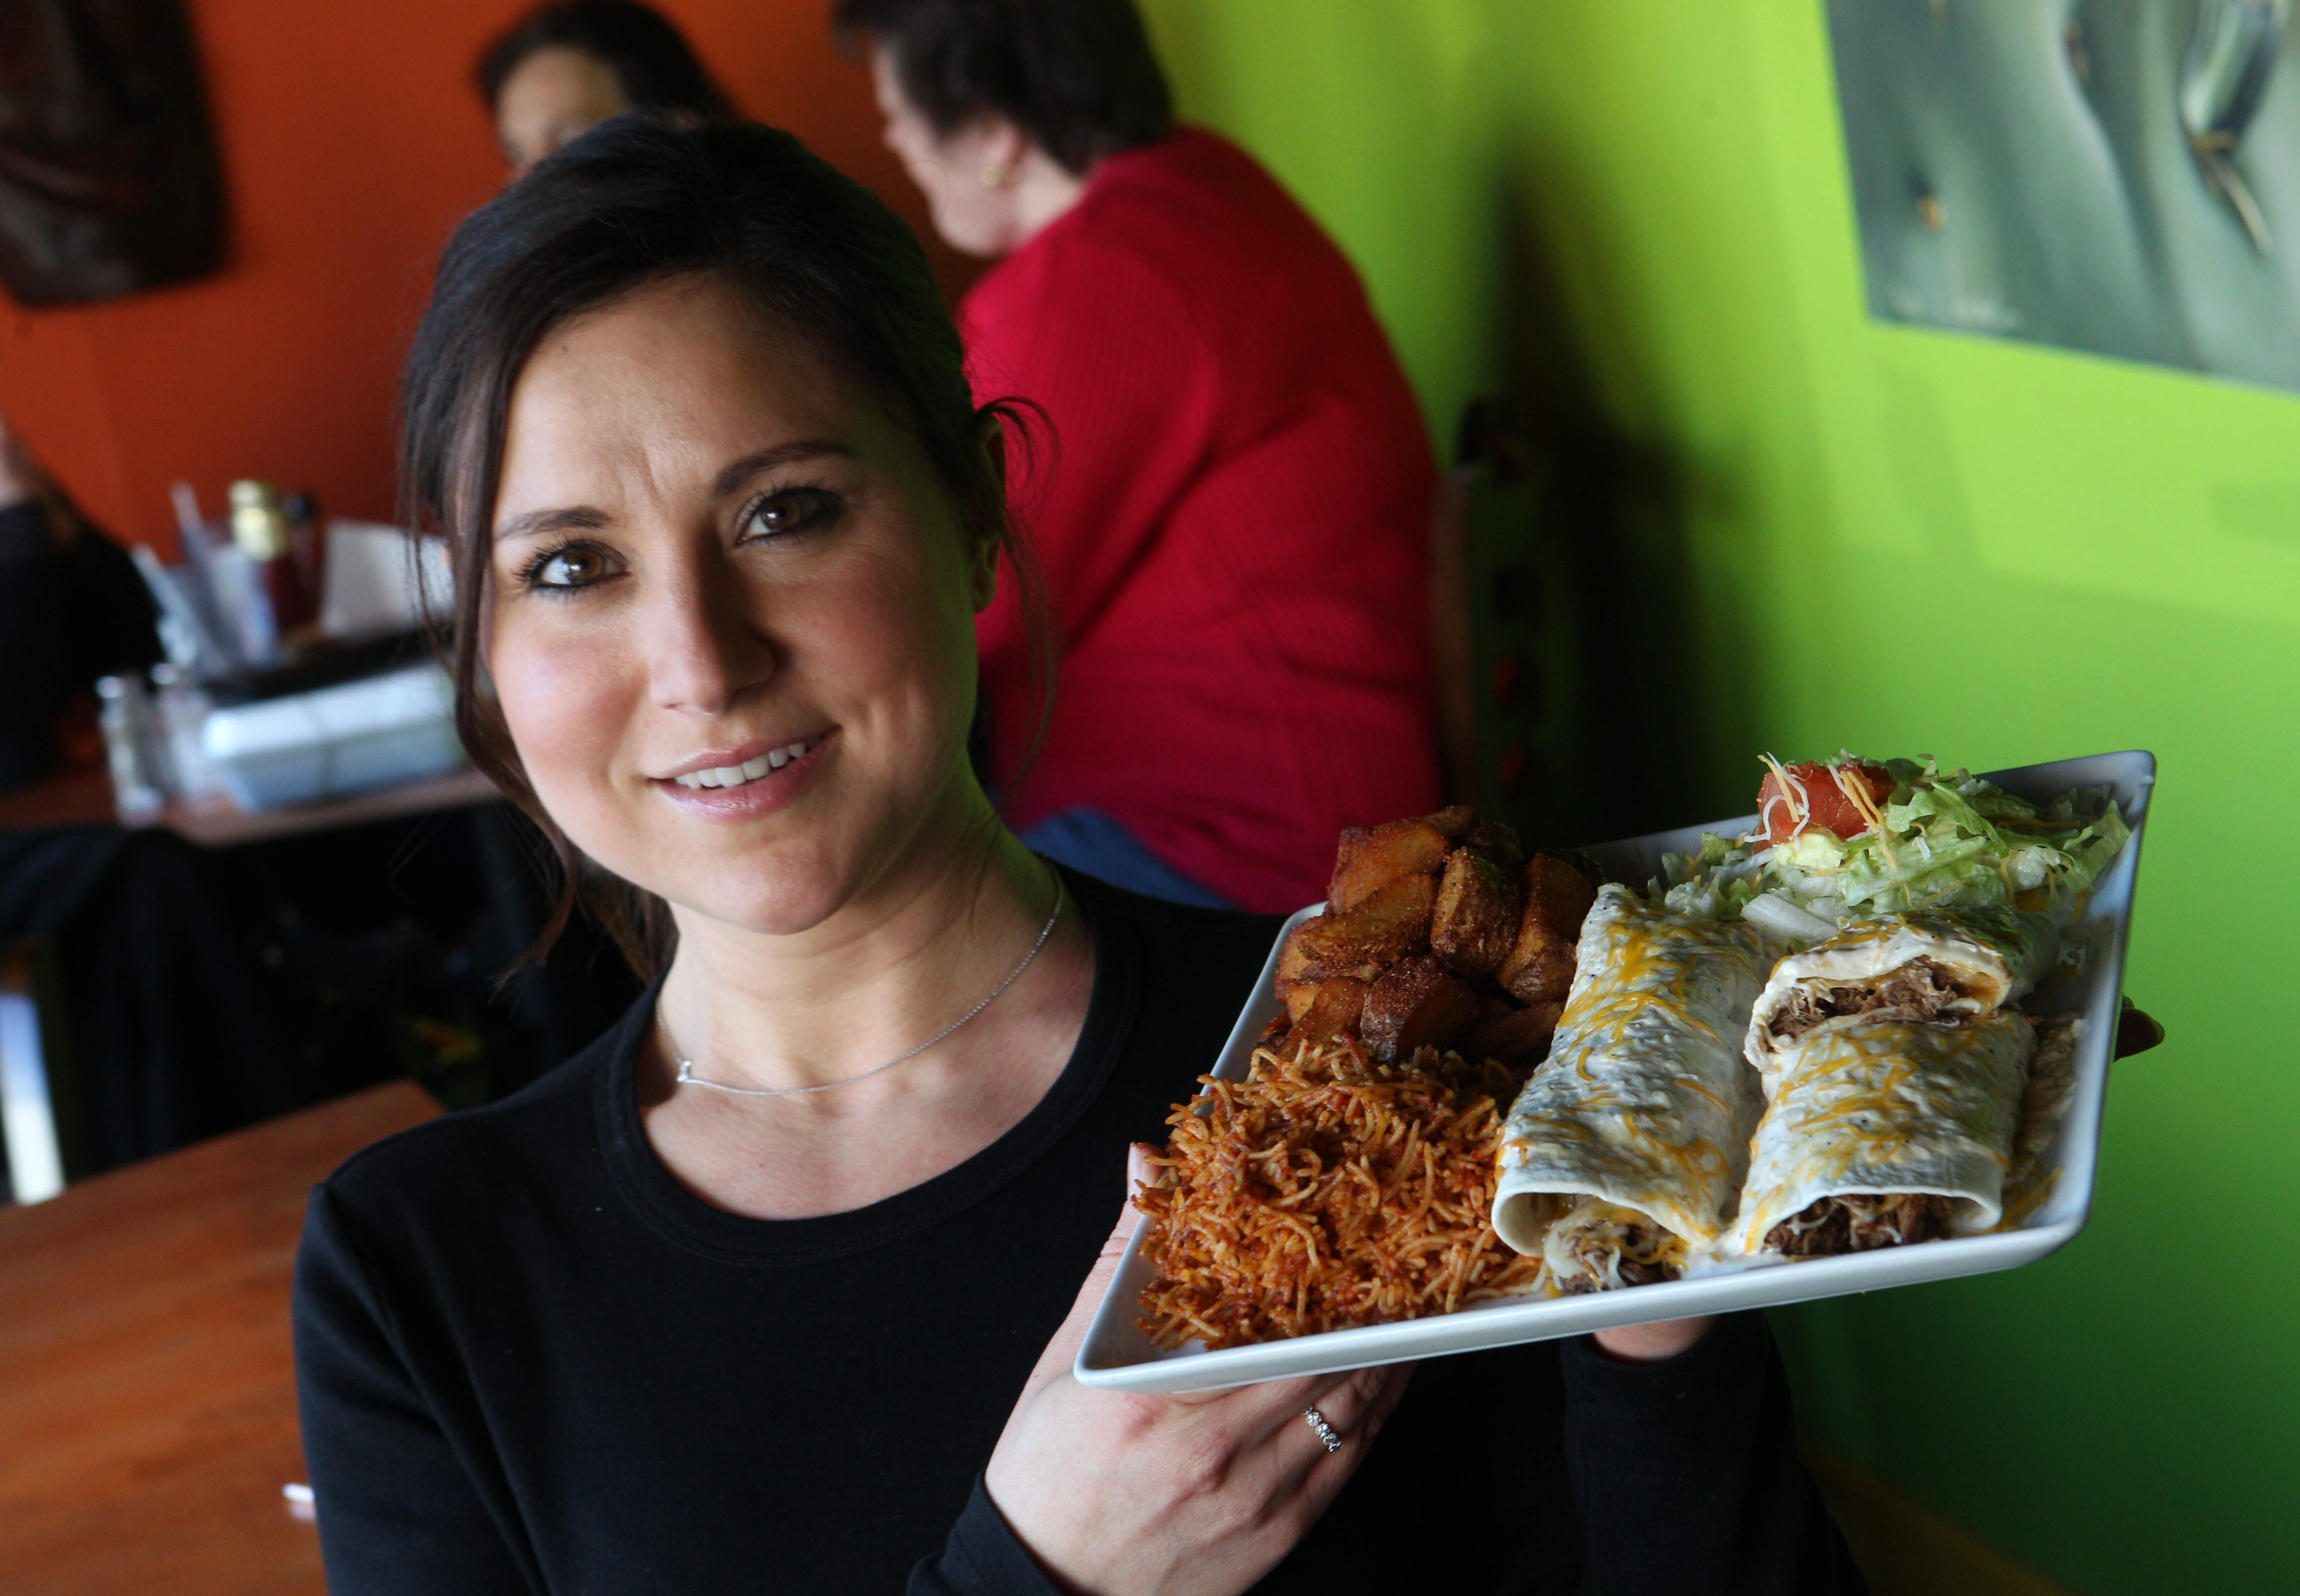 Morning Manager Kristy Gerber presents the beef matchatka plate at Coyote Cafe in Hamburg. Owner Jeff Giovino says he learned to cook from his Grandma Mora.